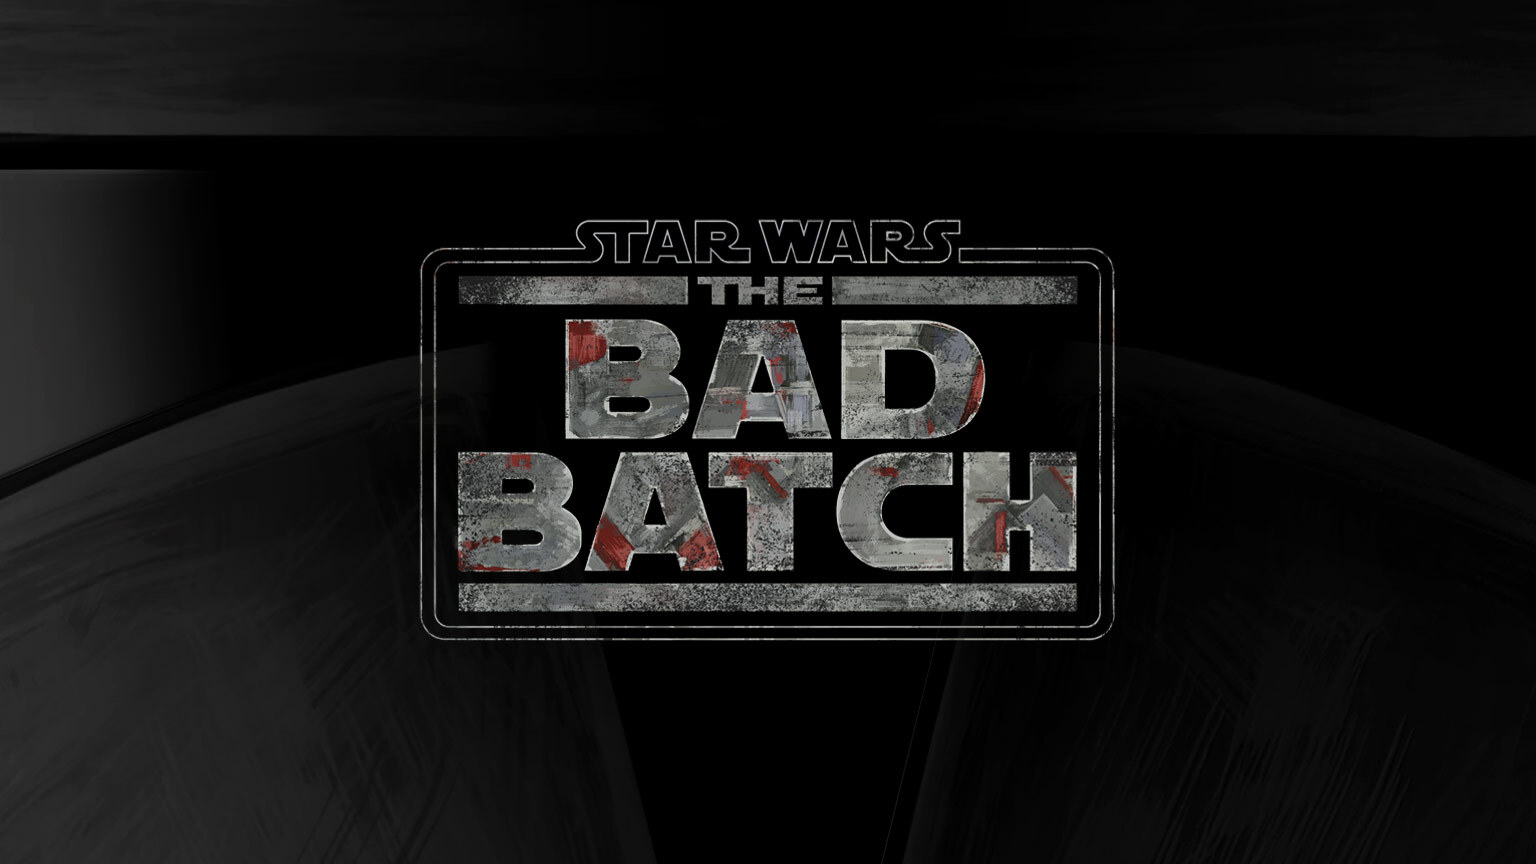 Star Wars: The Bad Batch - new series starting today at Disney Plus